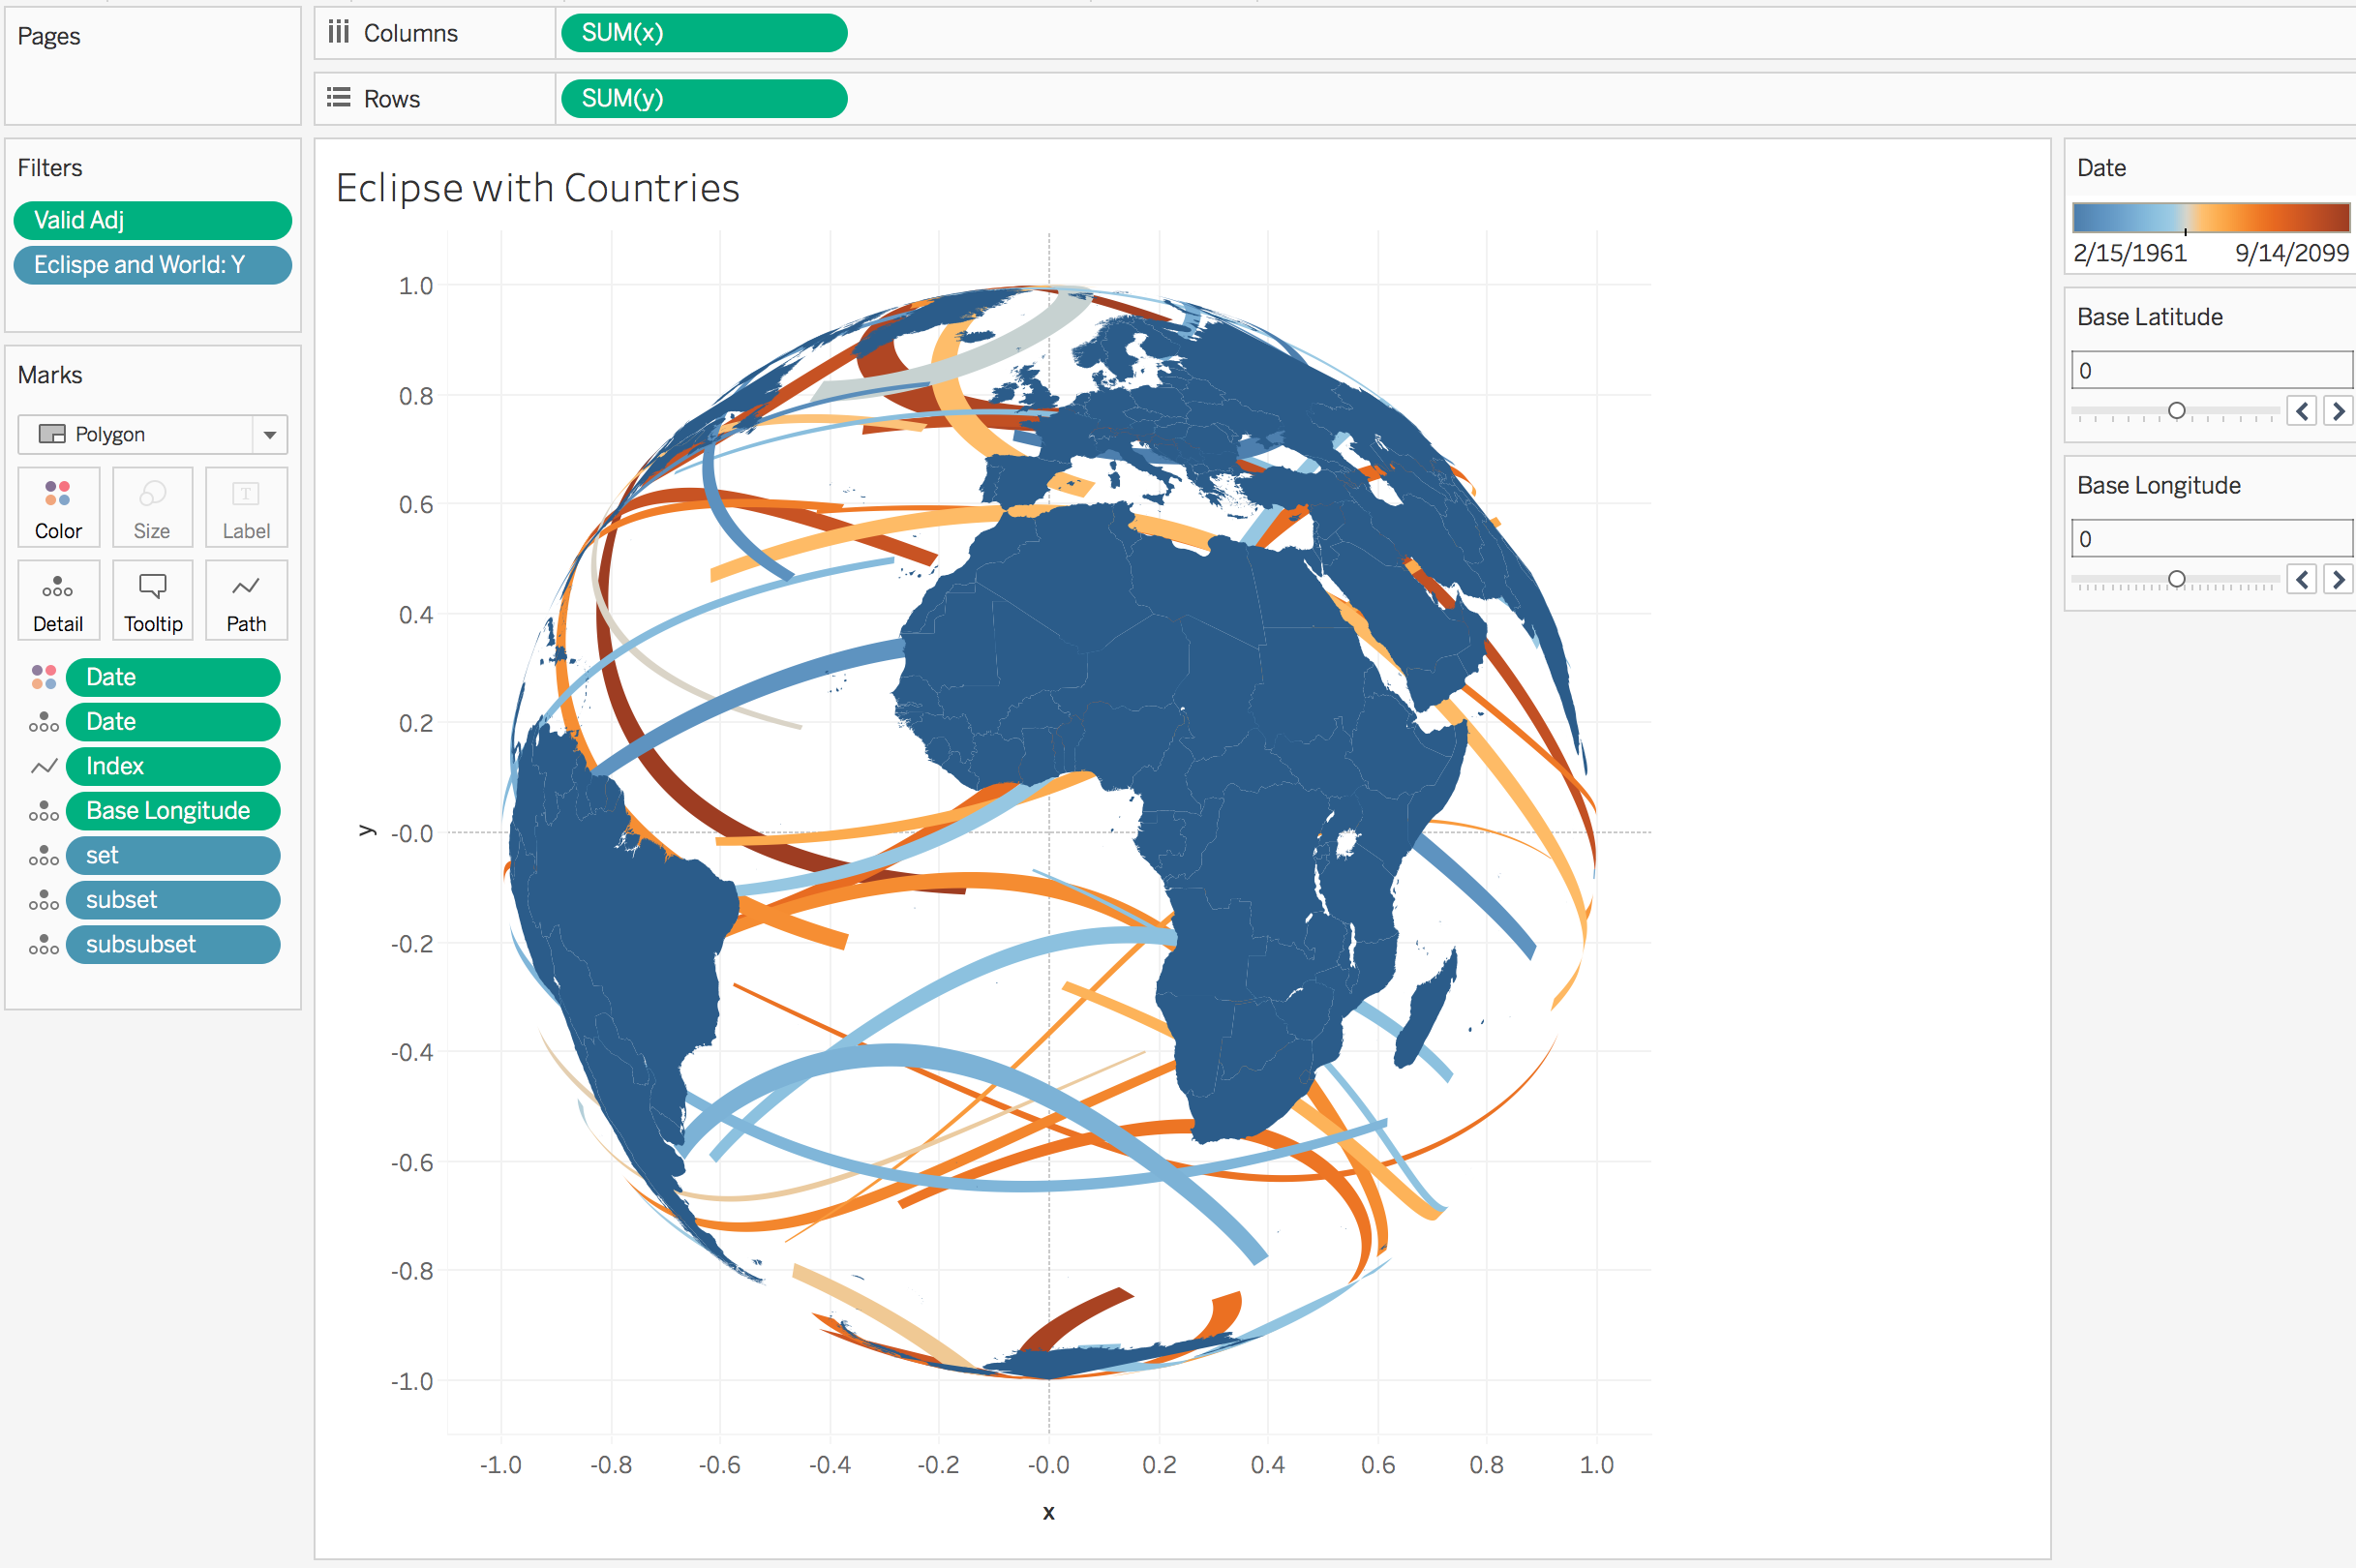 Creating orthographic maps (globe-like maps) in Tableau is easier